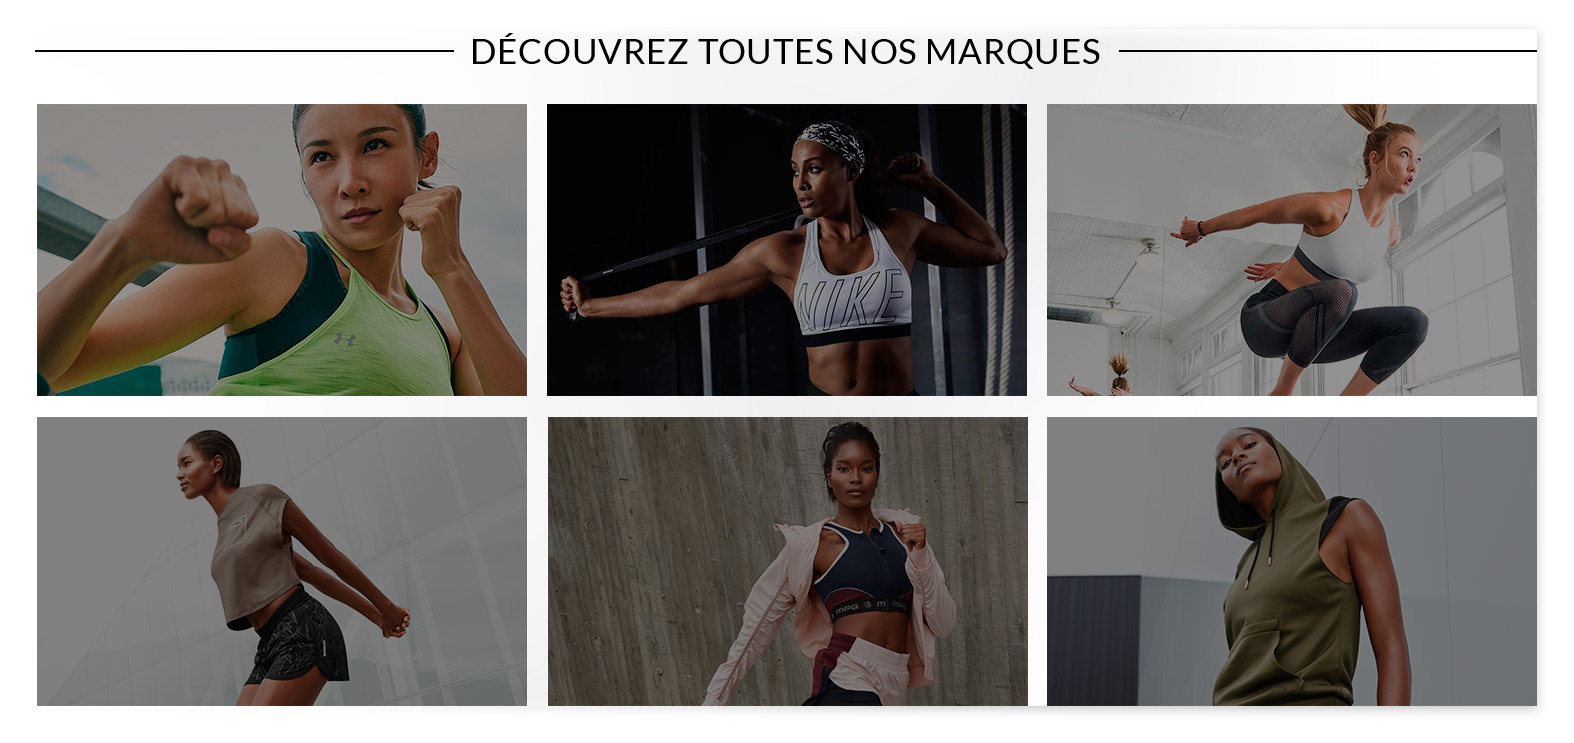 A17-BGL-FEMME-IFIV5_Marques-footer marques_V1.psd